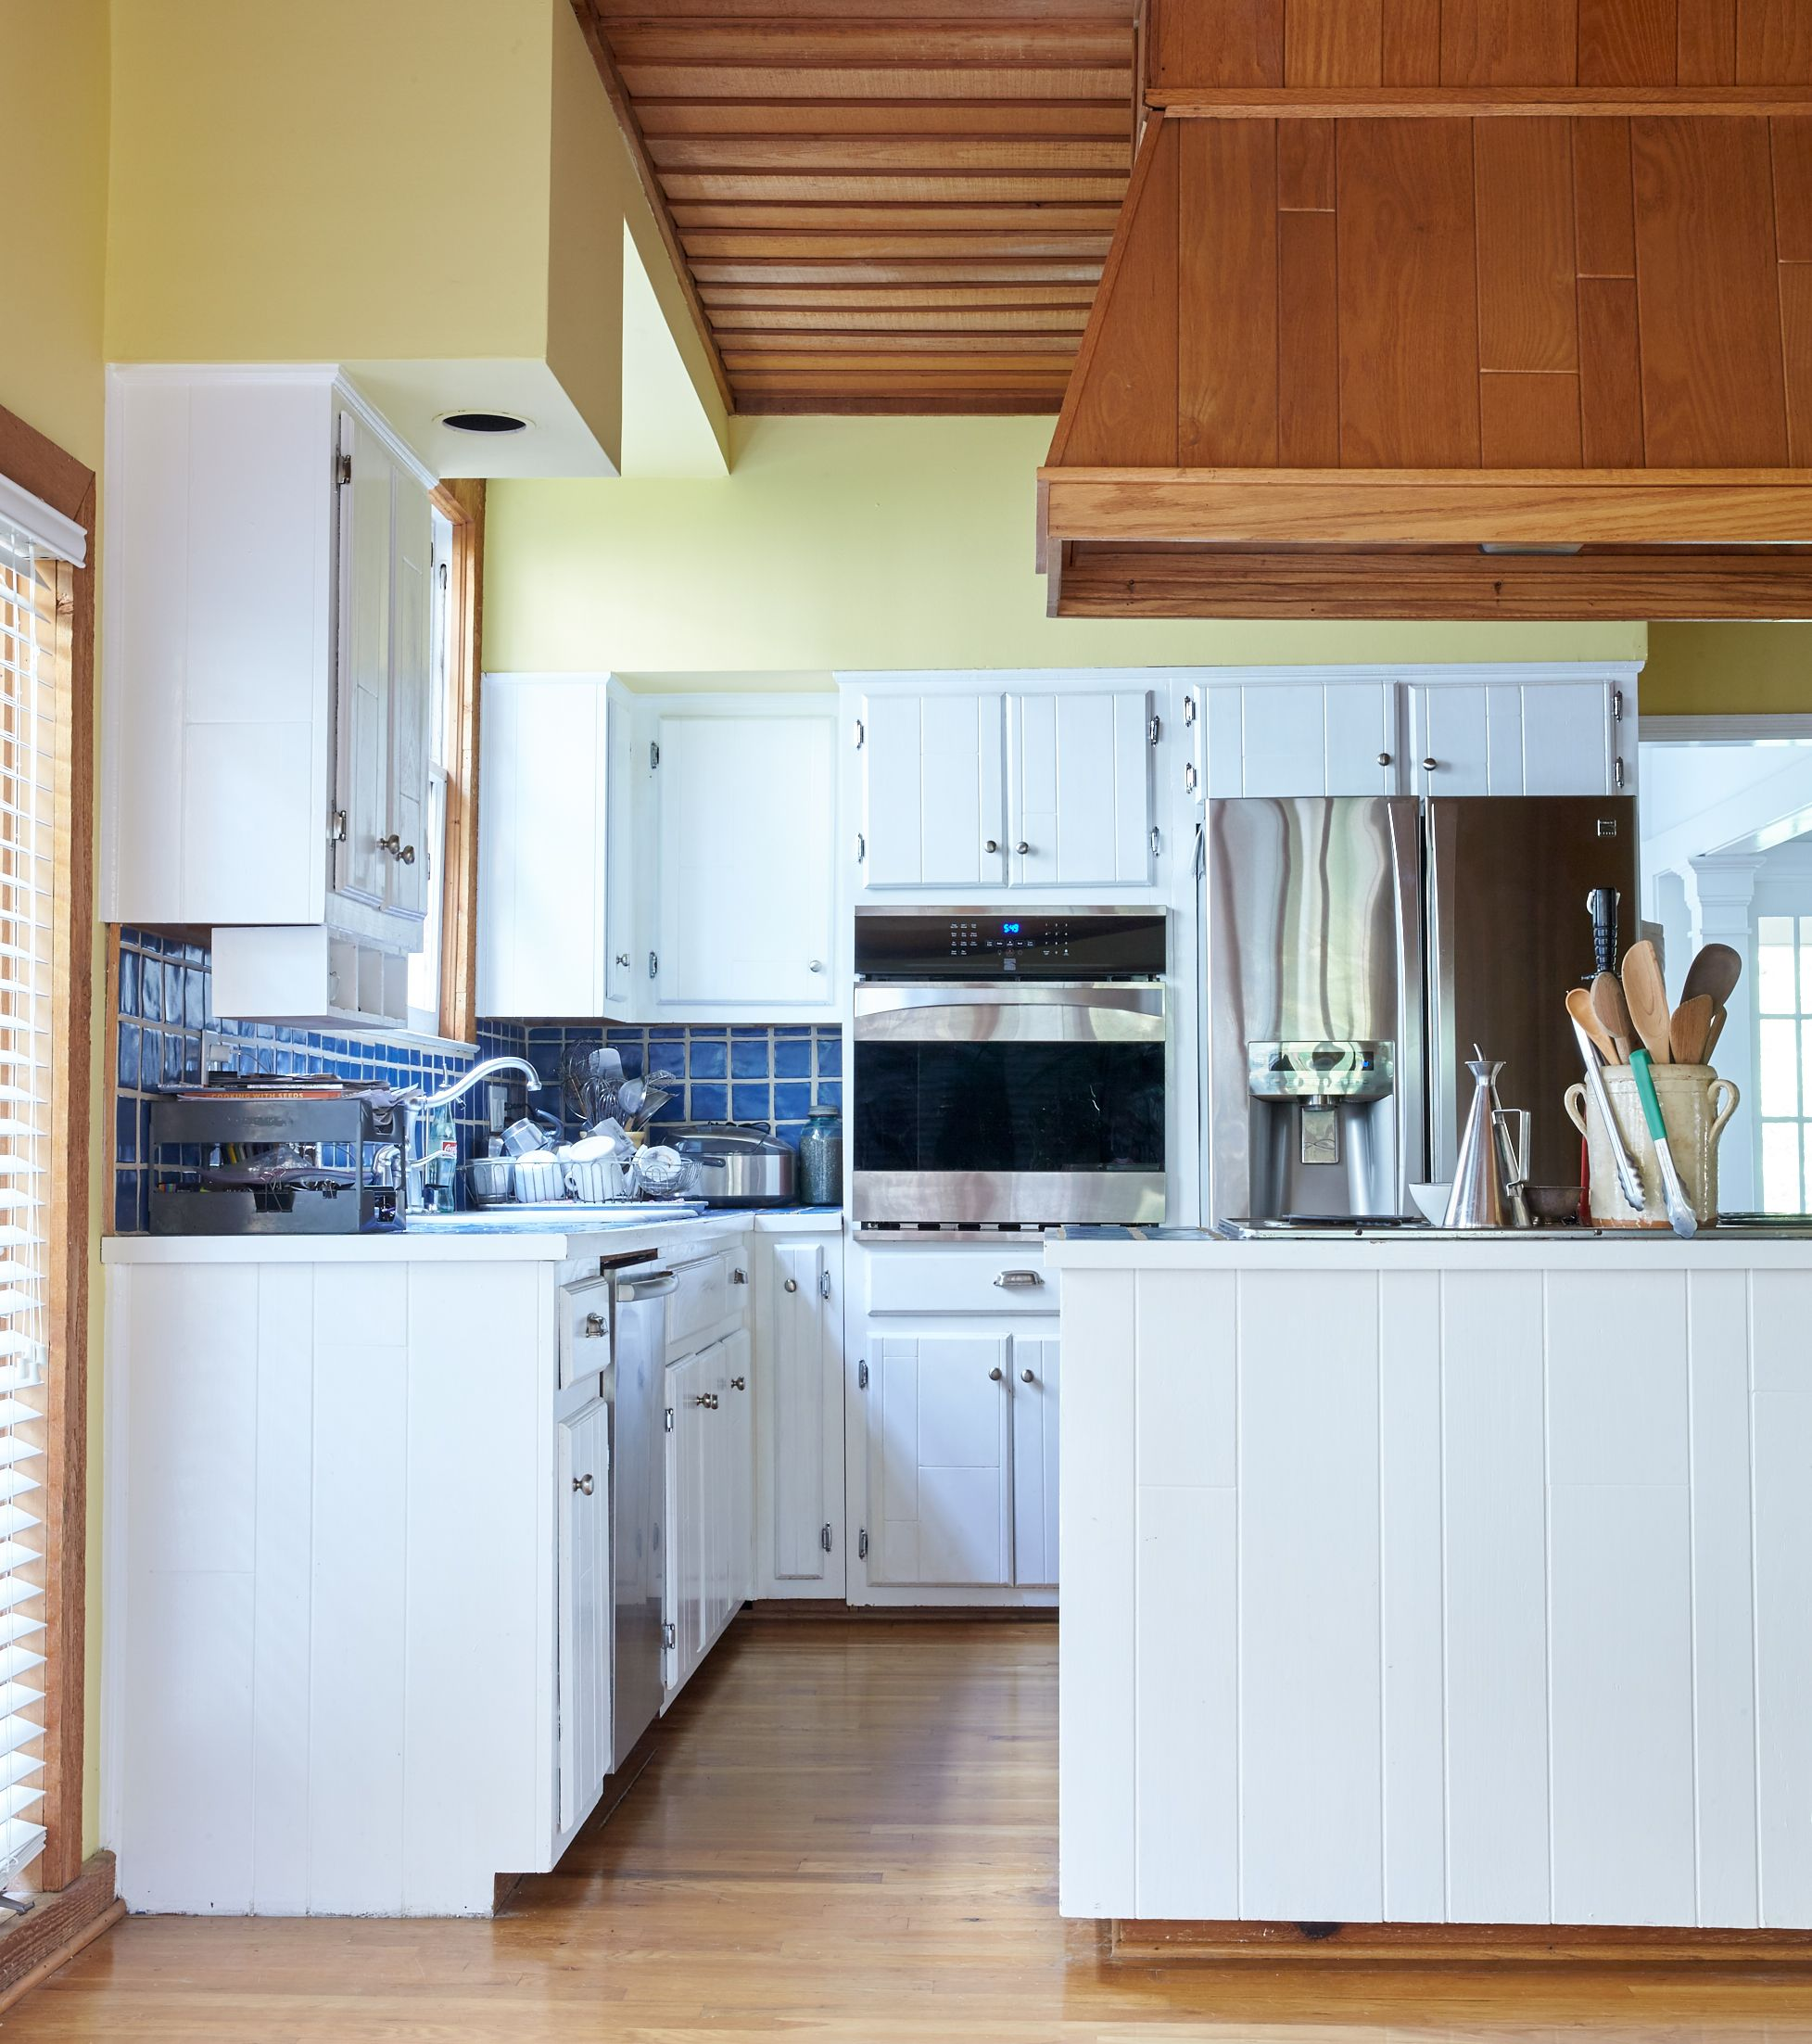 Country Living Food Editor Kitchen Renovation - Before and After ...